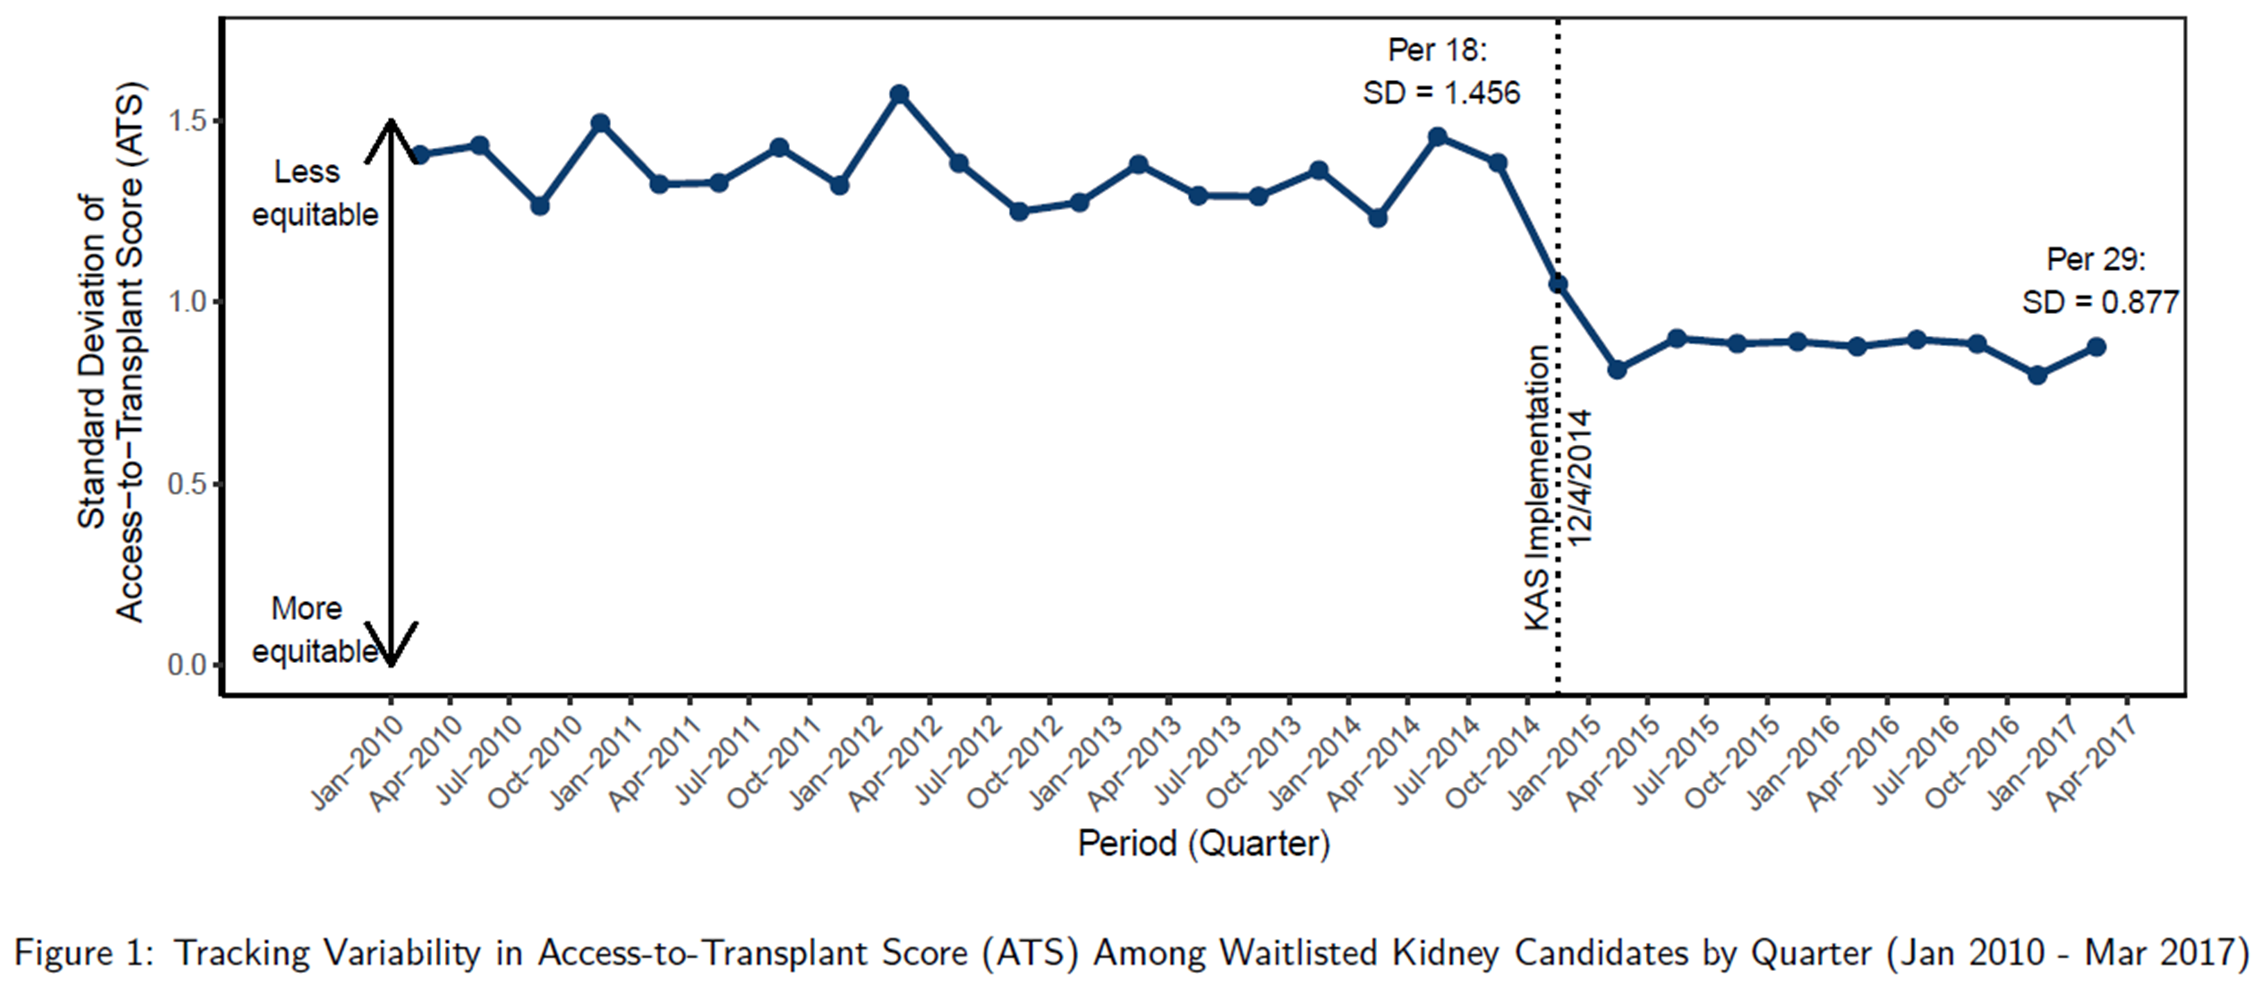 Figure 1: Tracking Variability in Access-to-Transplant Score (ATS) Among Waitlisted Kidney Candidates by Quarter (Jan 2010 - March 2017). Along the x axis, the figure displays period or quarter. Along the y axis, standard deviation of access-to-transplant score (ATS) is charted from values 0 to 2, with 0 representing more equity and 2 representing less equity. In April 2014, per 18 SD equals 1.456. KAS was implemented in December 2014. In January 2017, per 29 SD equals 0.877.